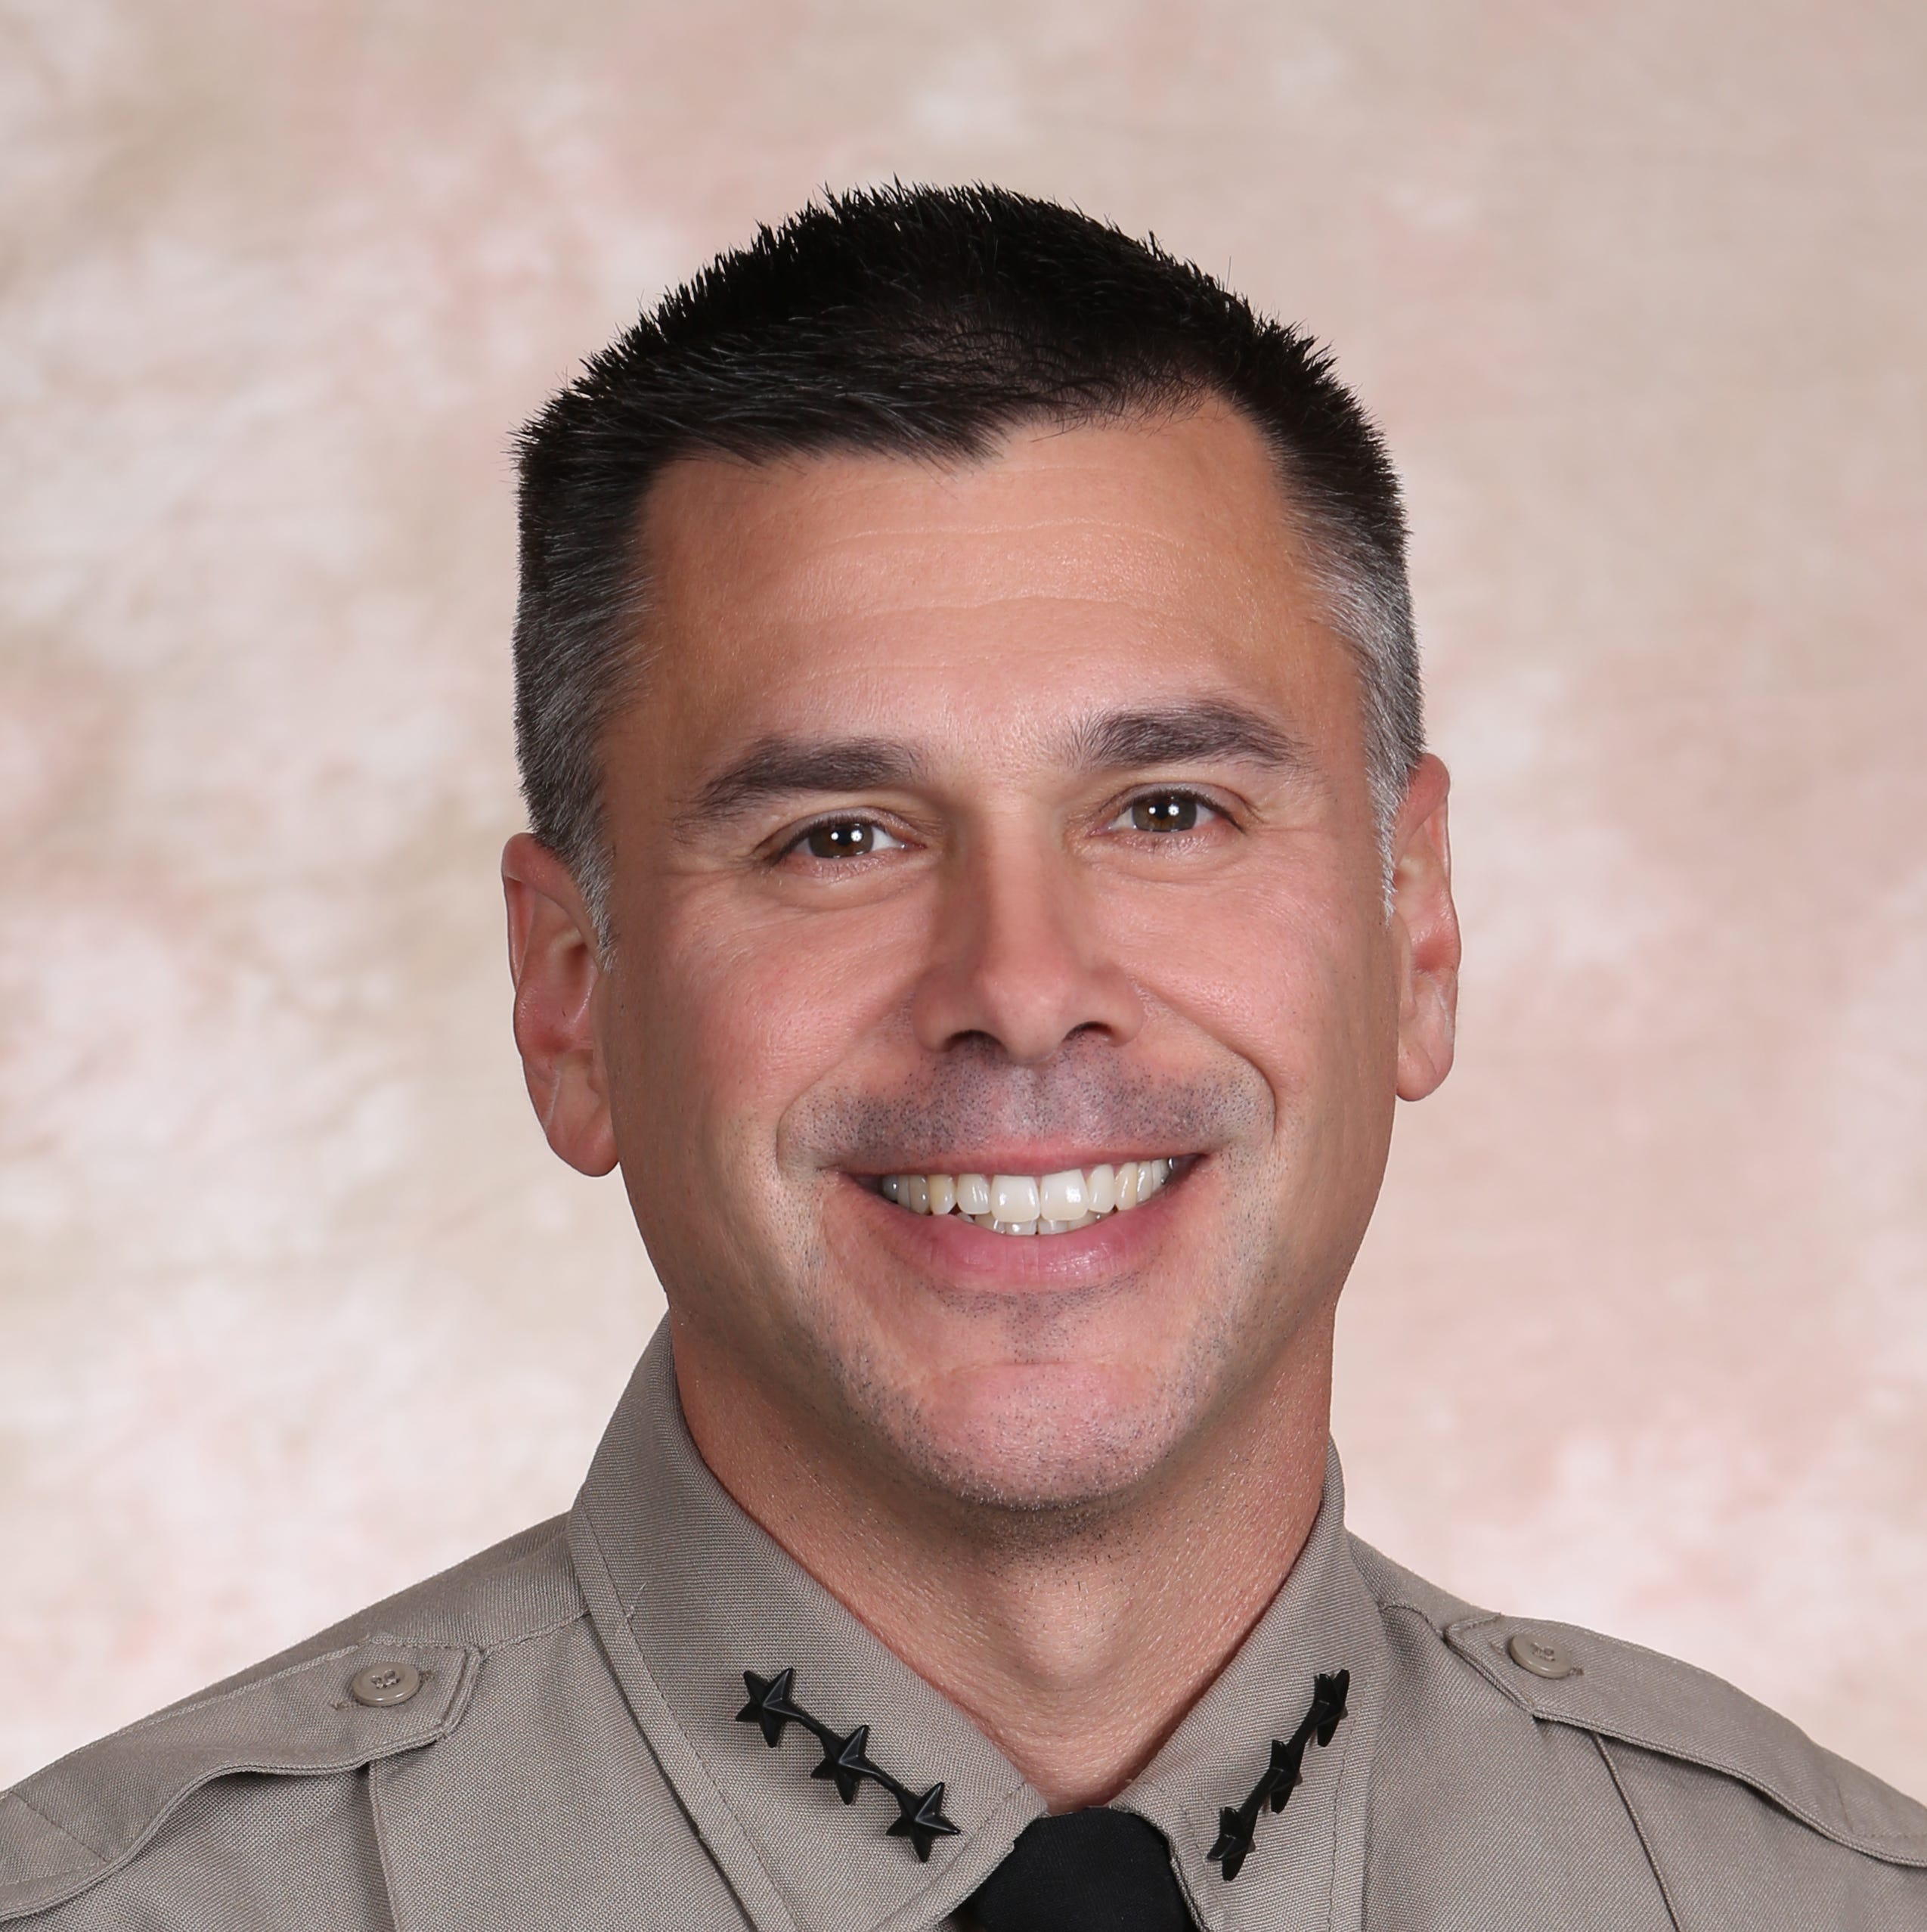 Guest Opinion: Sheriffs tackling Oregon's mental health crisis through community-based models